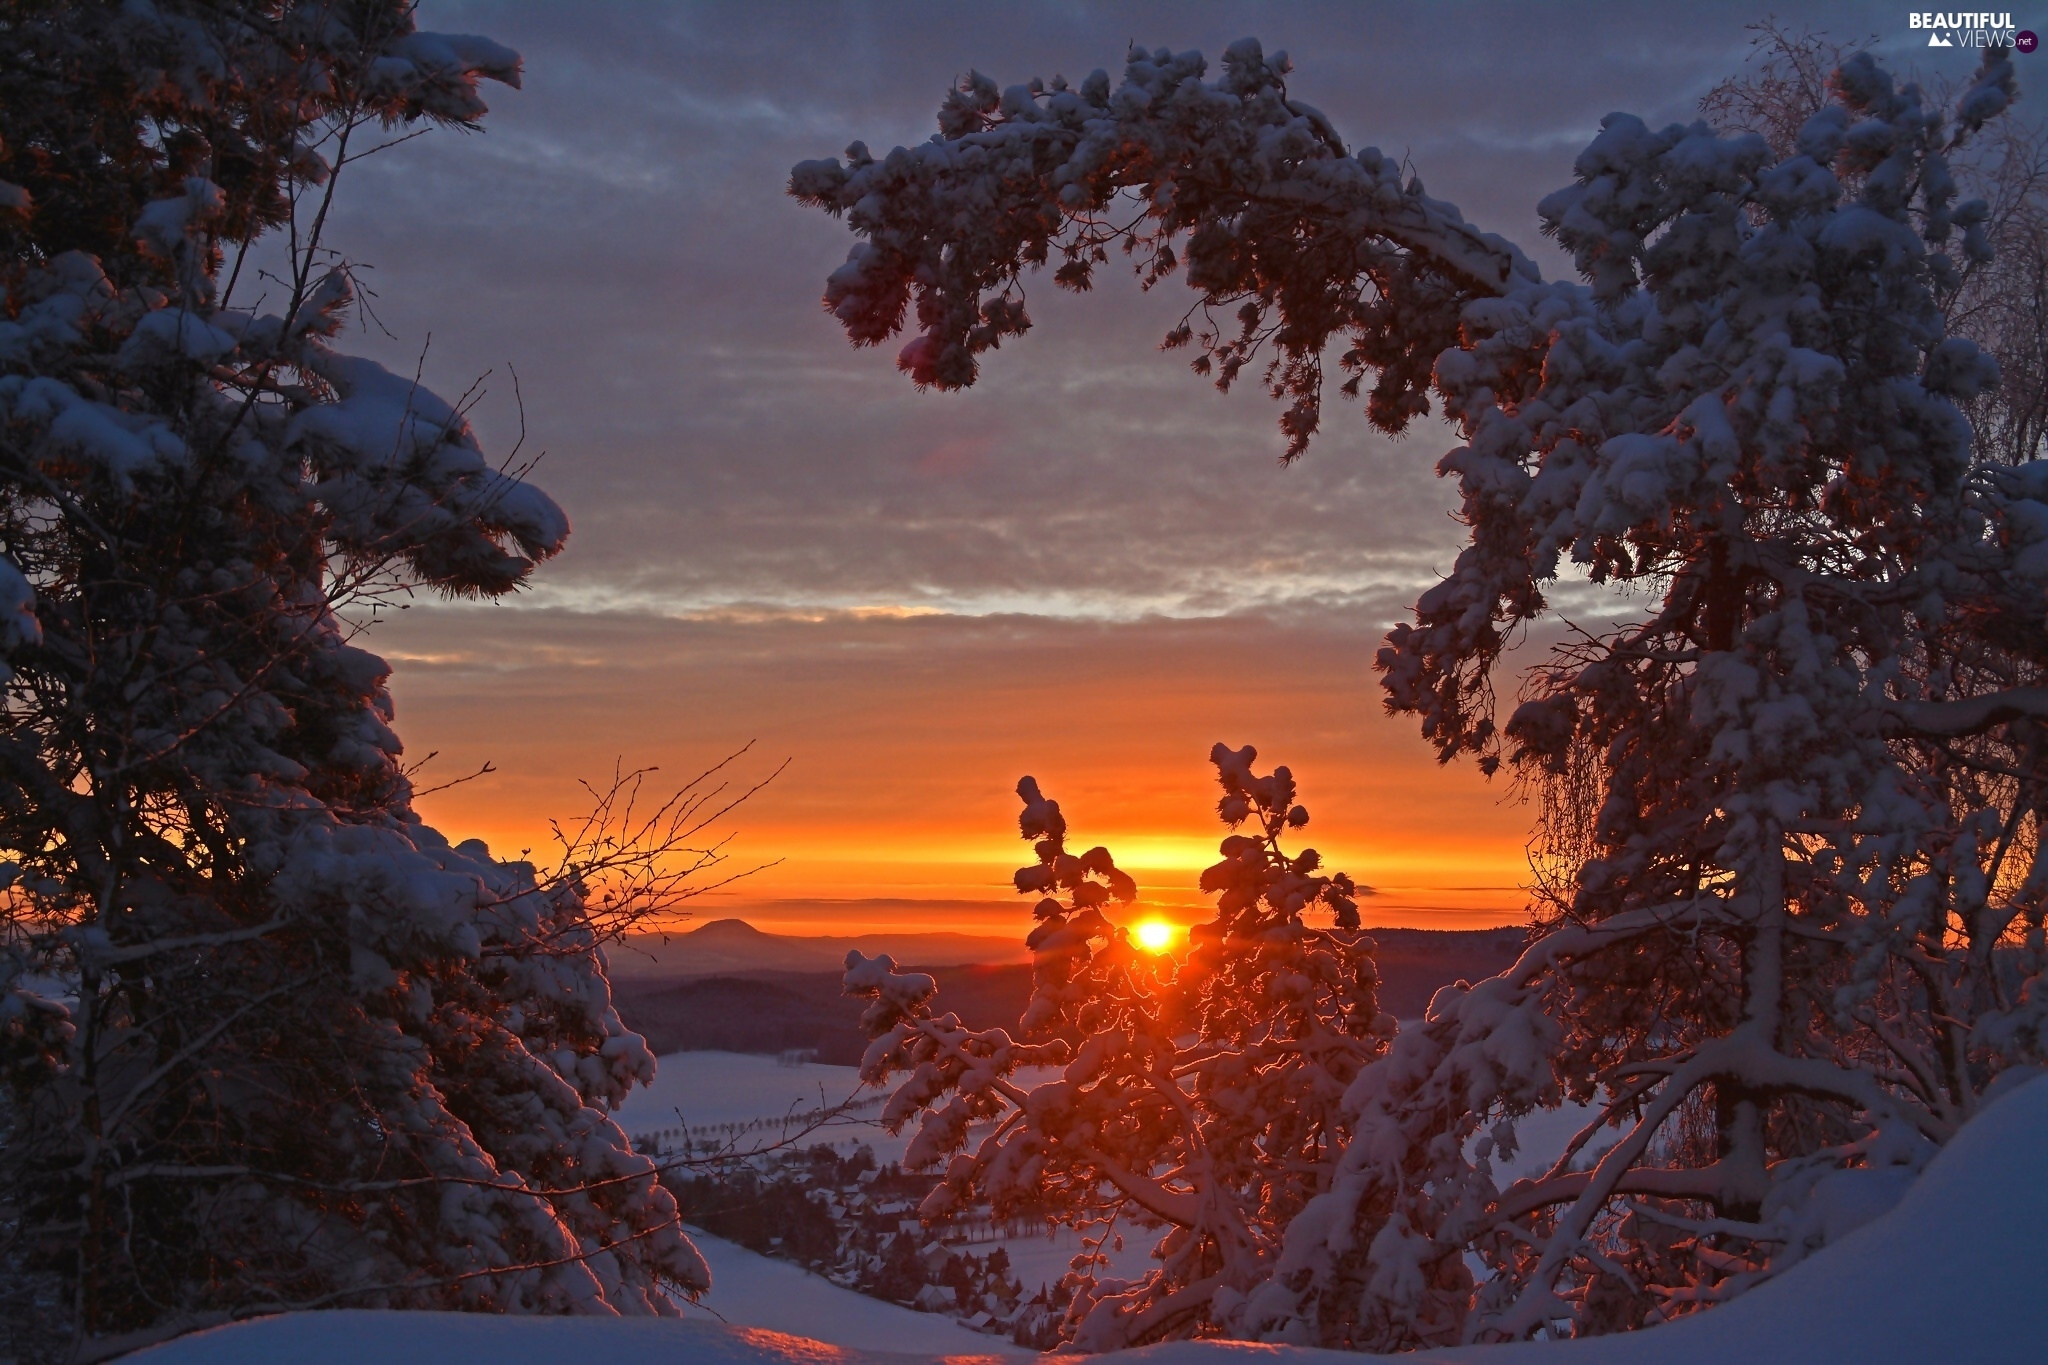 Great Sunsets, viewes, winter, trees